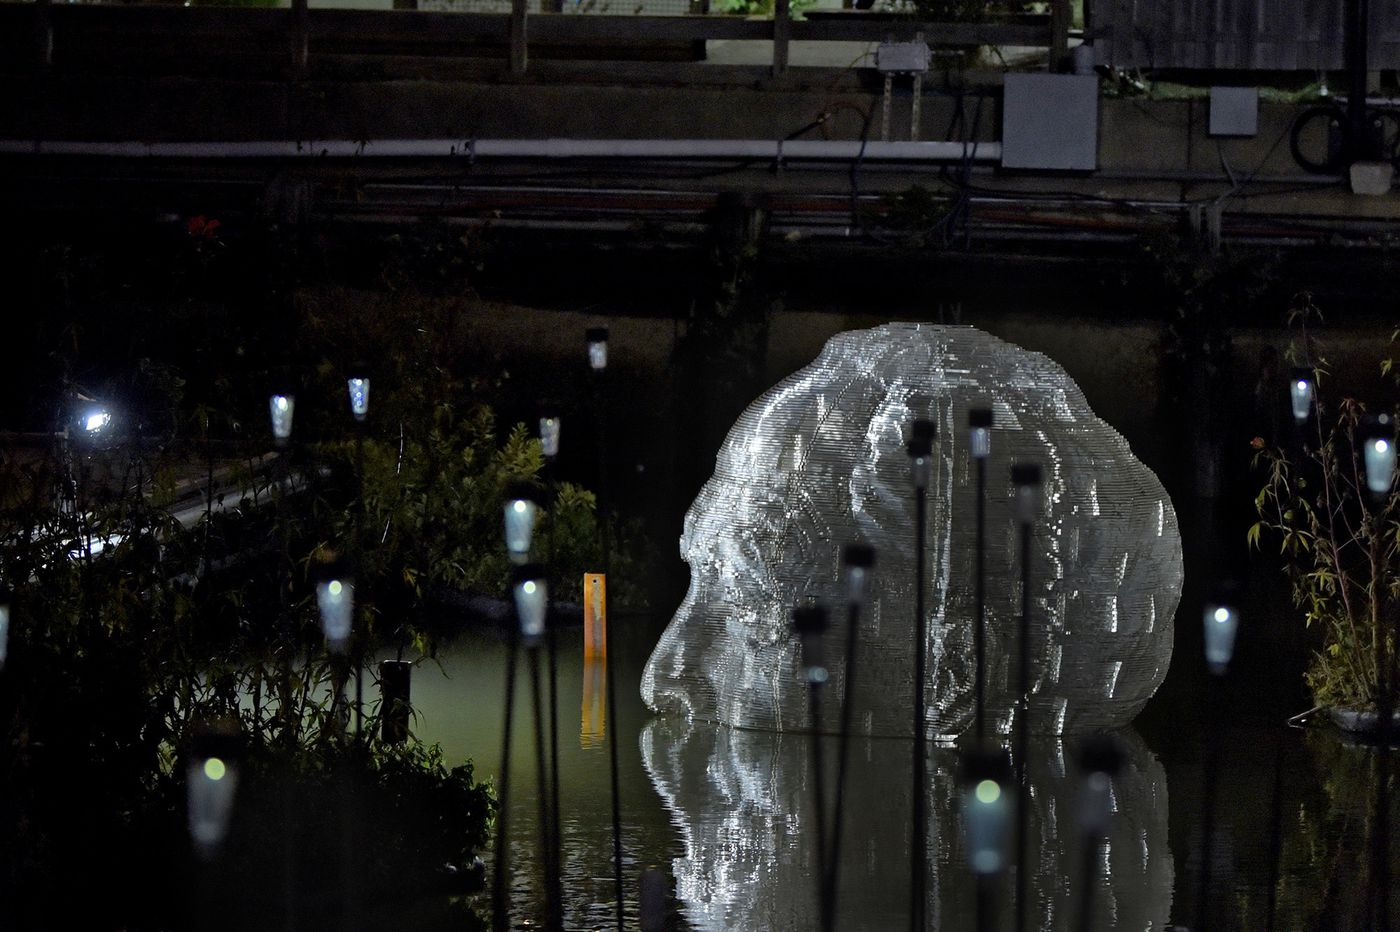 Ardmore Jeweler Immortalized In Giant Translucent Sculpture By Artist's Son